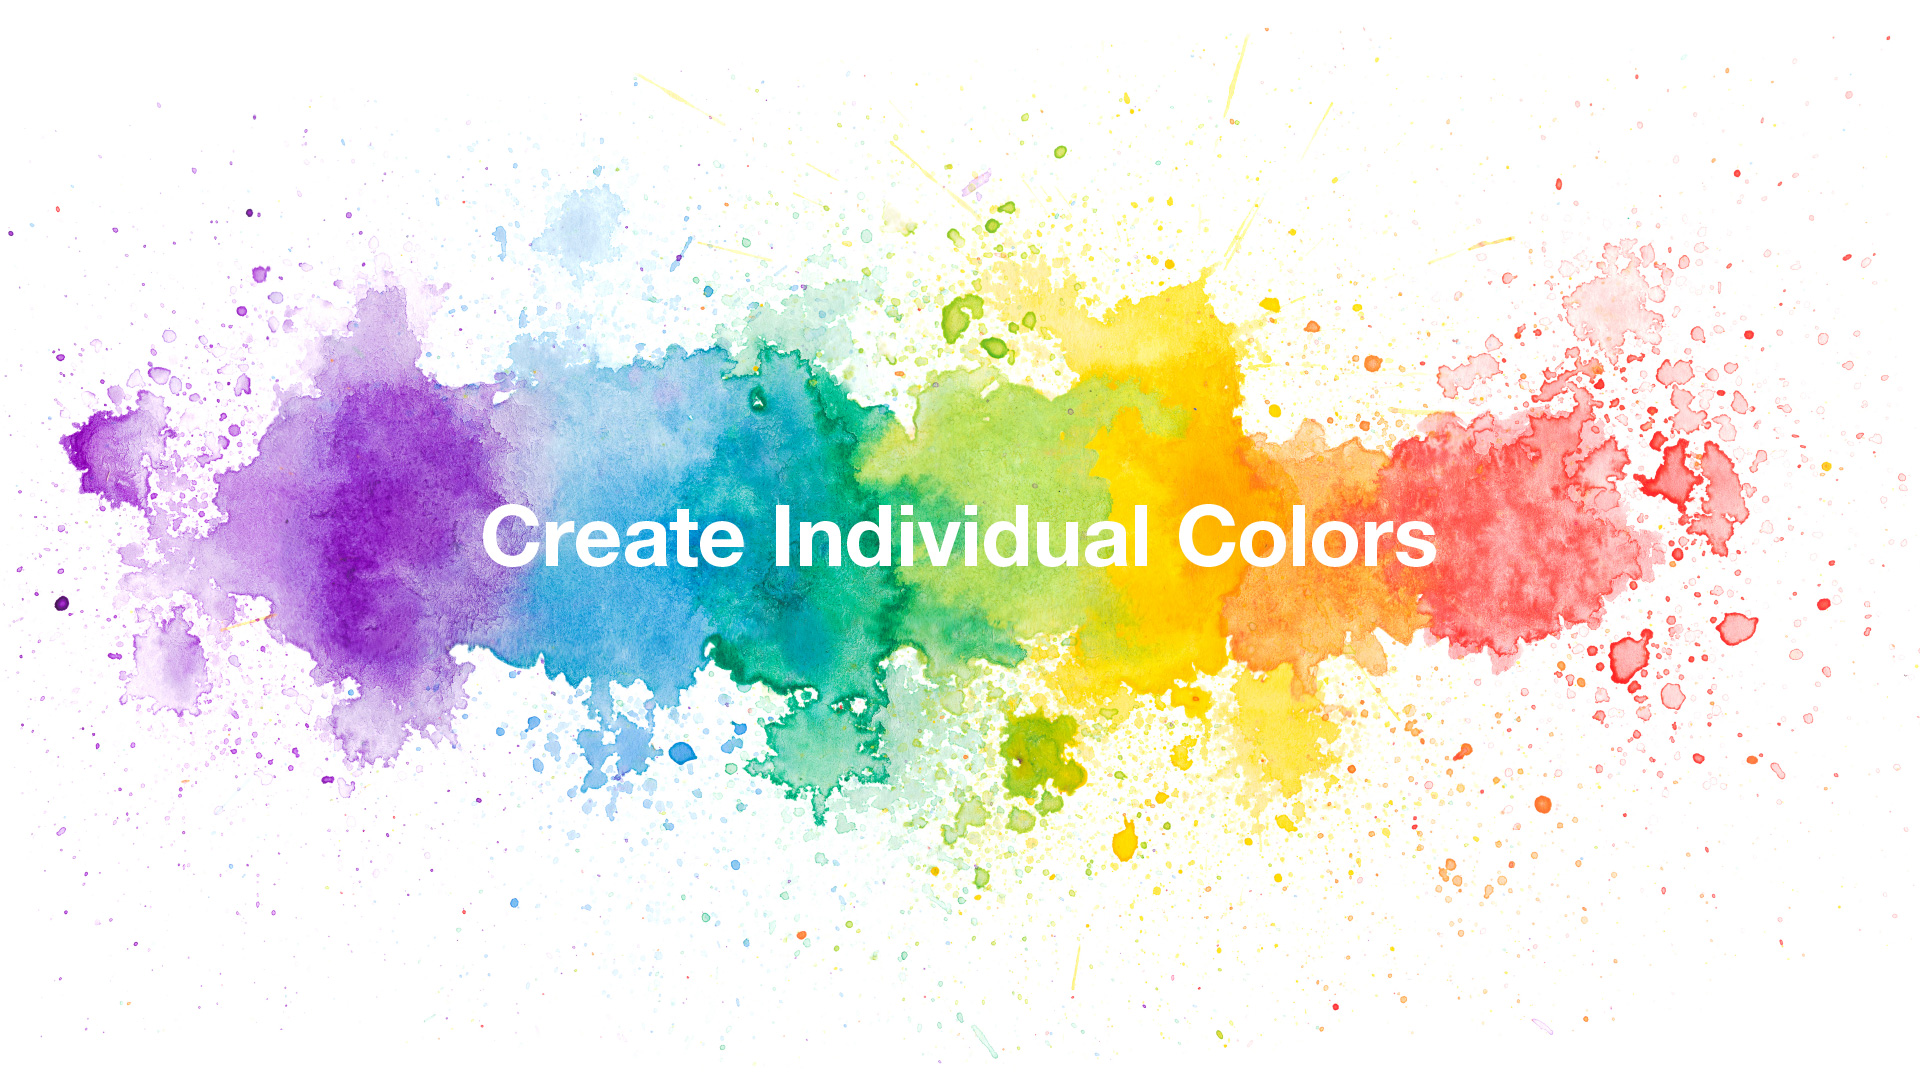 CREATE INDIVIDUAL COLORS